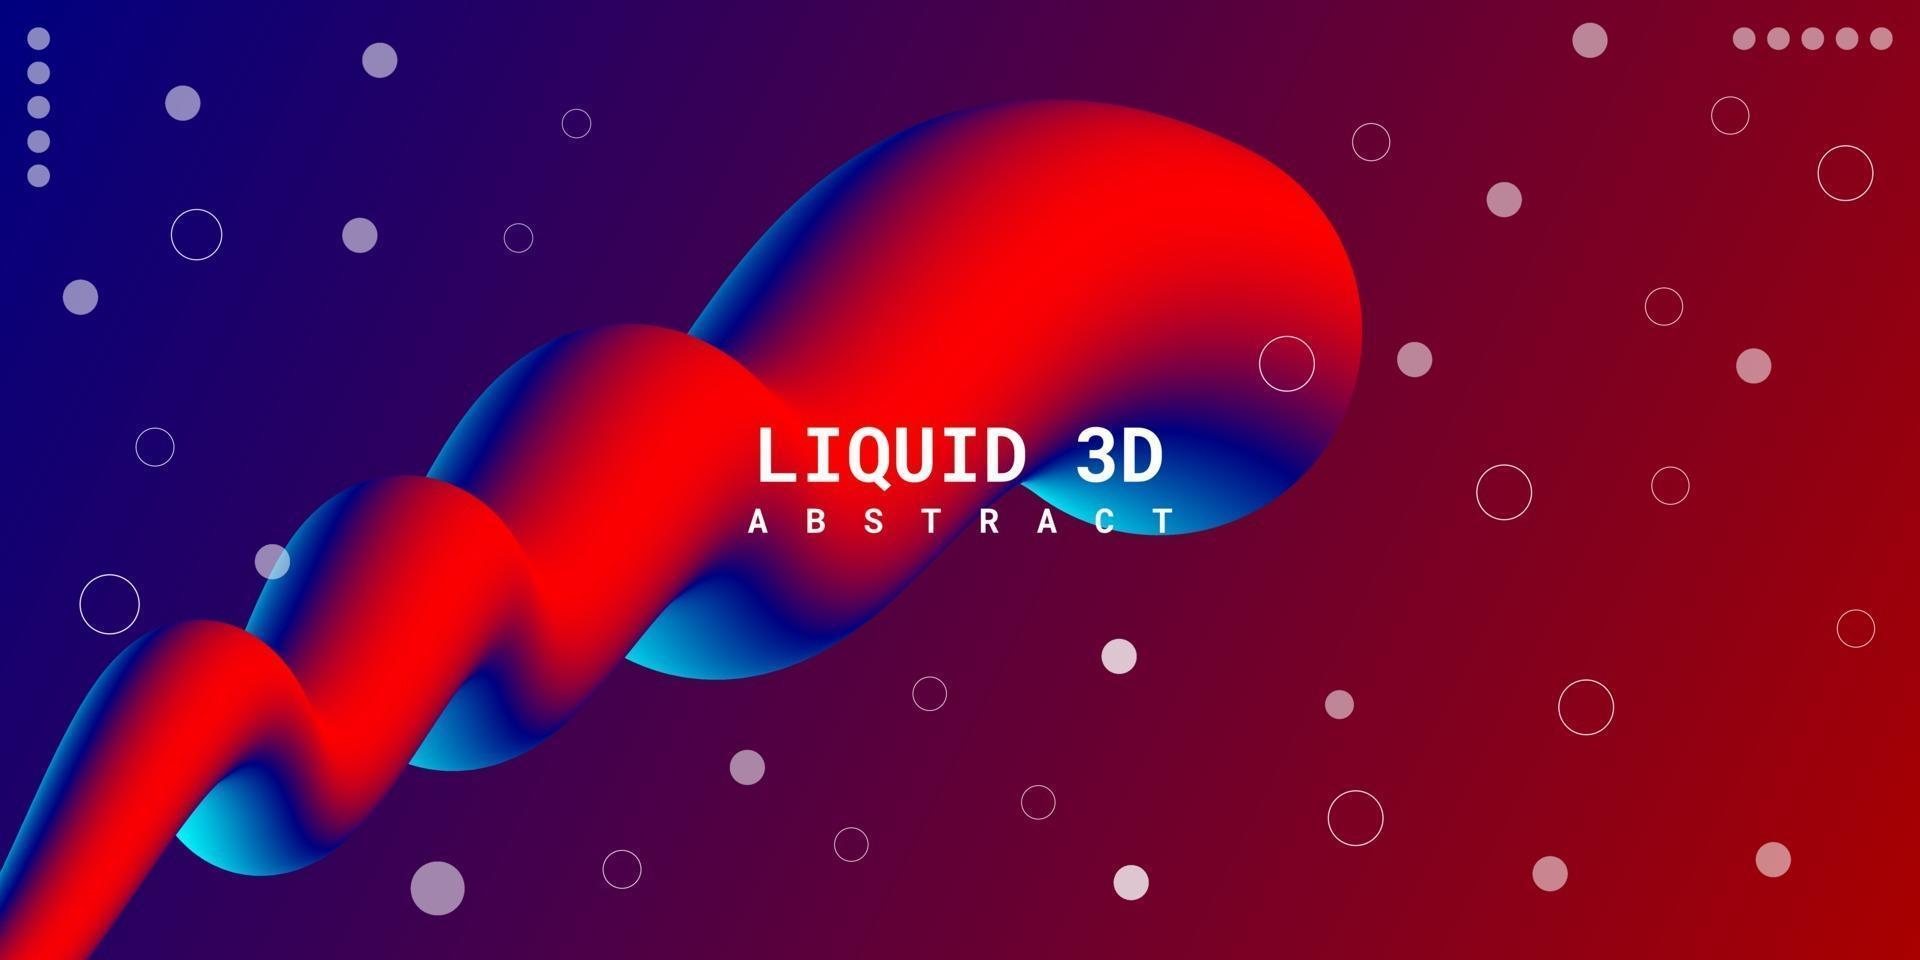 Modern abstract liquid 3d background with blue and red gradient vector